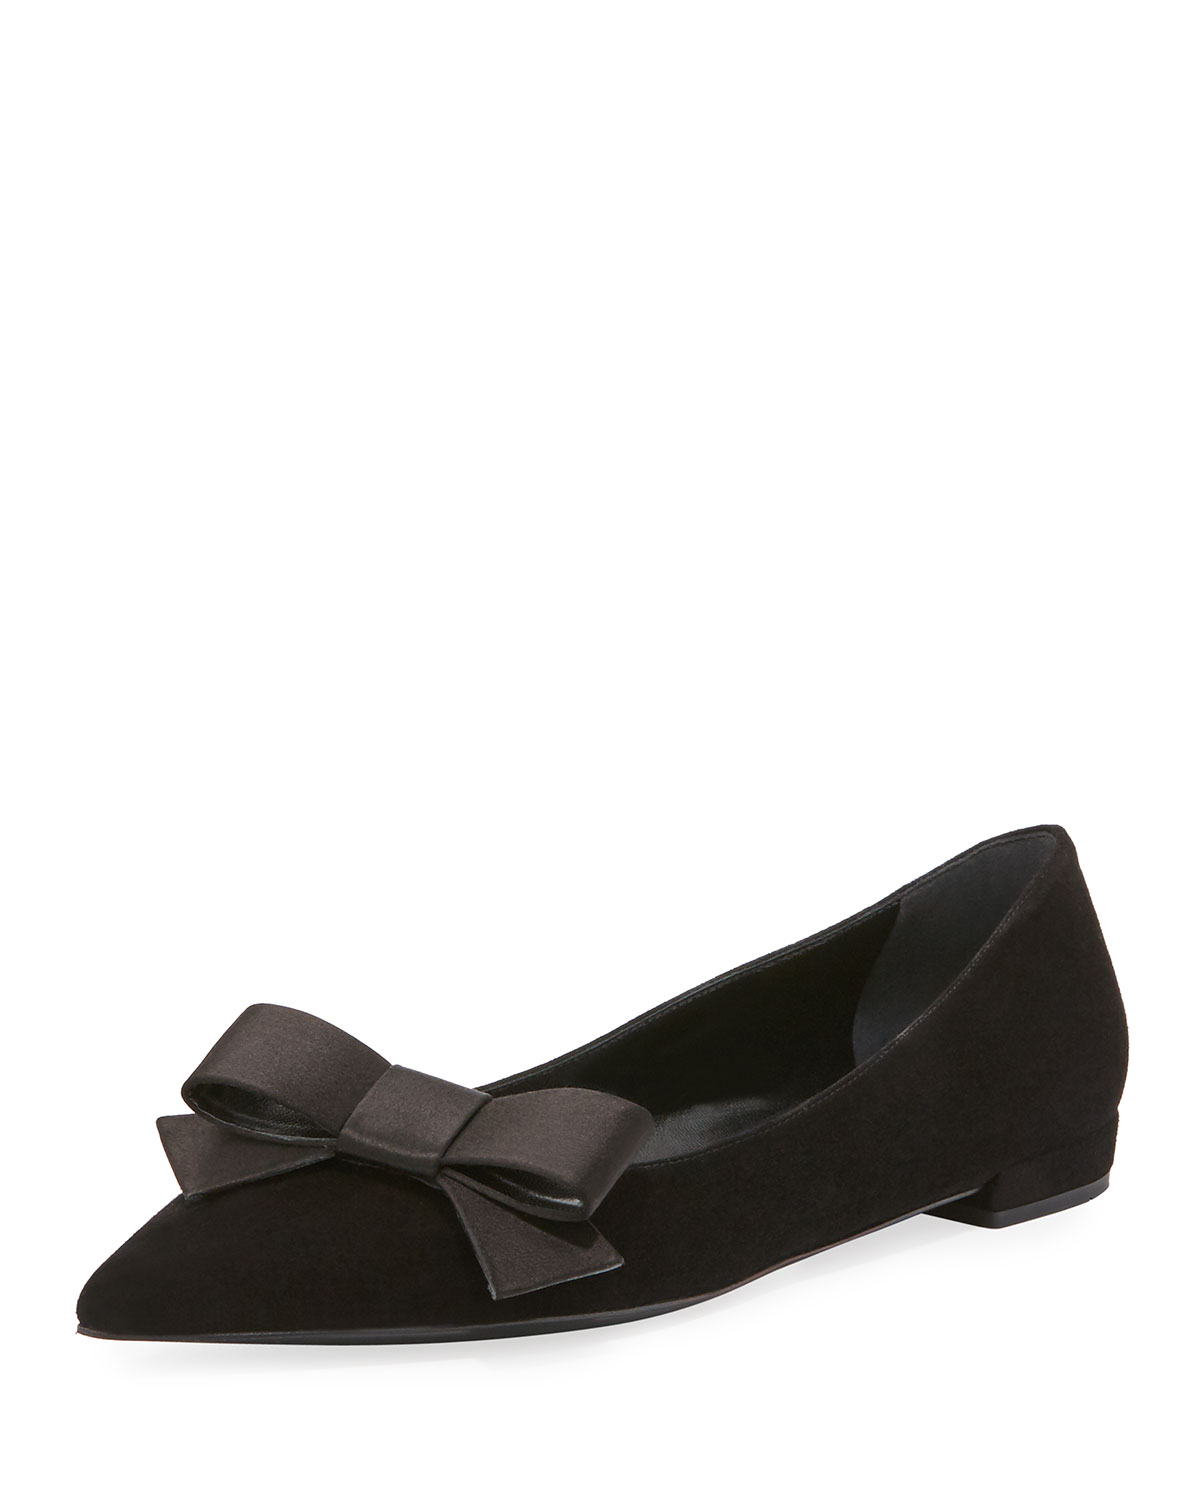 explore cheap price Prada Satin Pointed-Toe Flats latest online sale real cheap 2015 manchester great sale O8MGOVms4